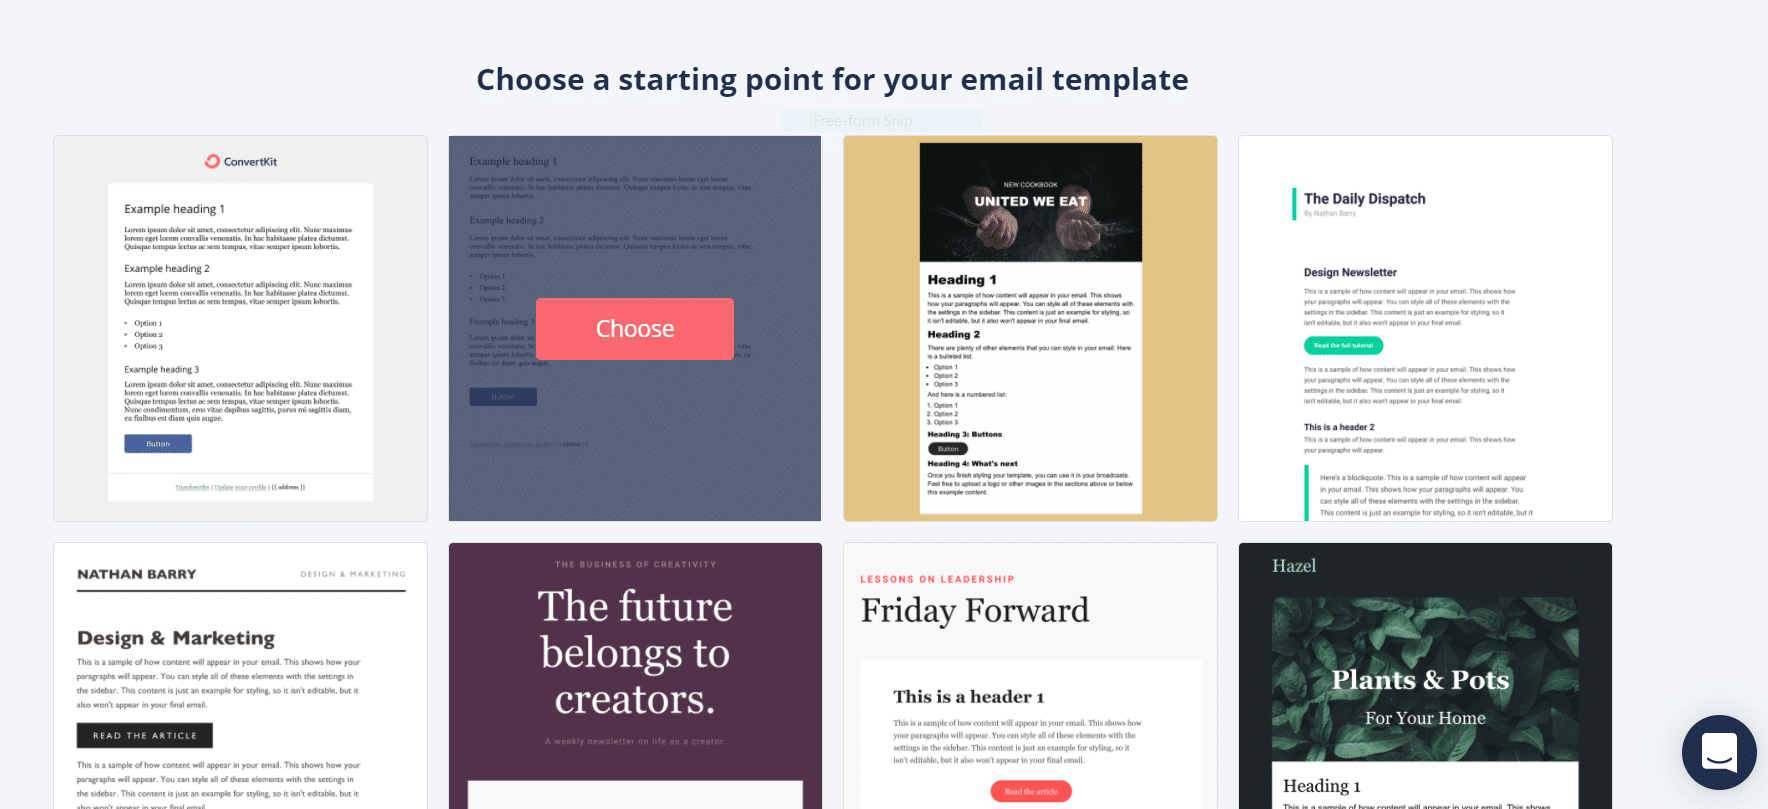 How to choose an email template in ConvertKit